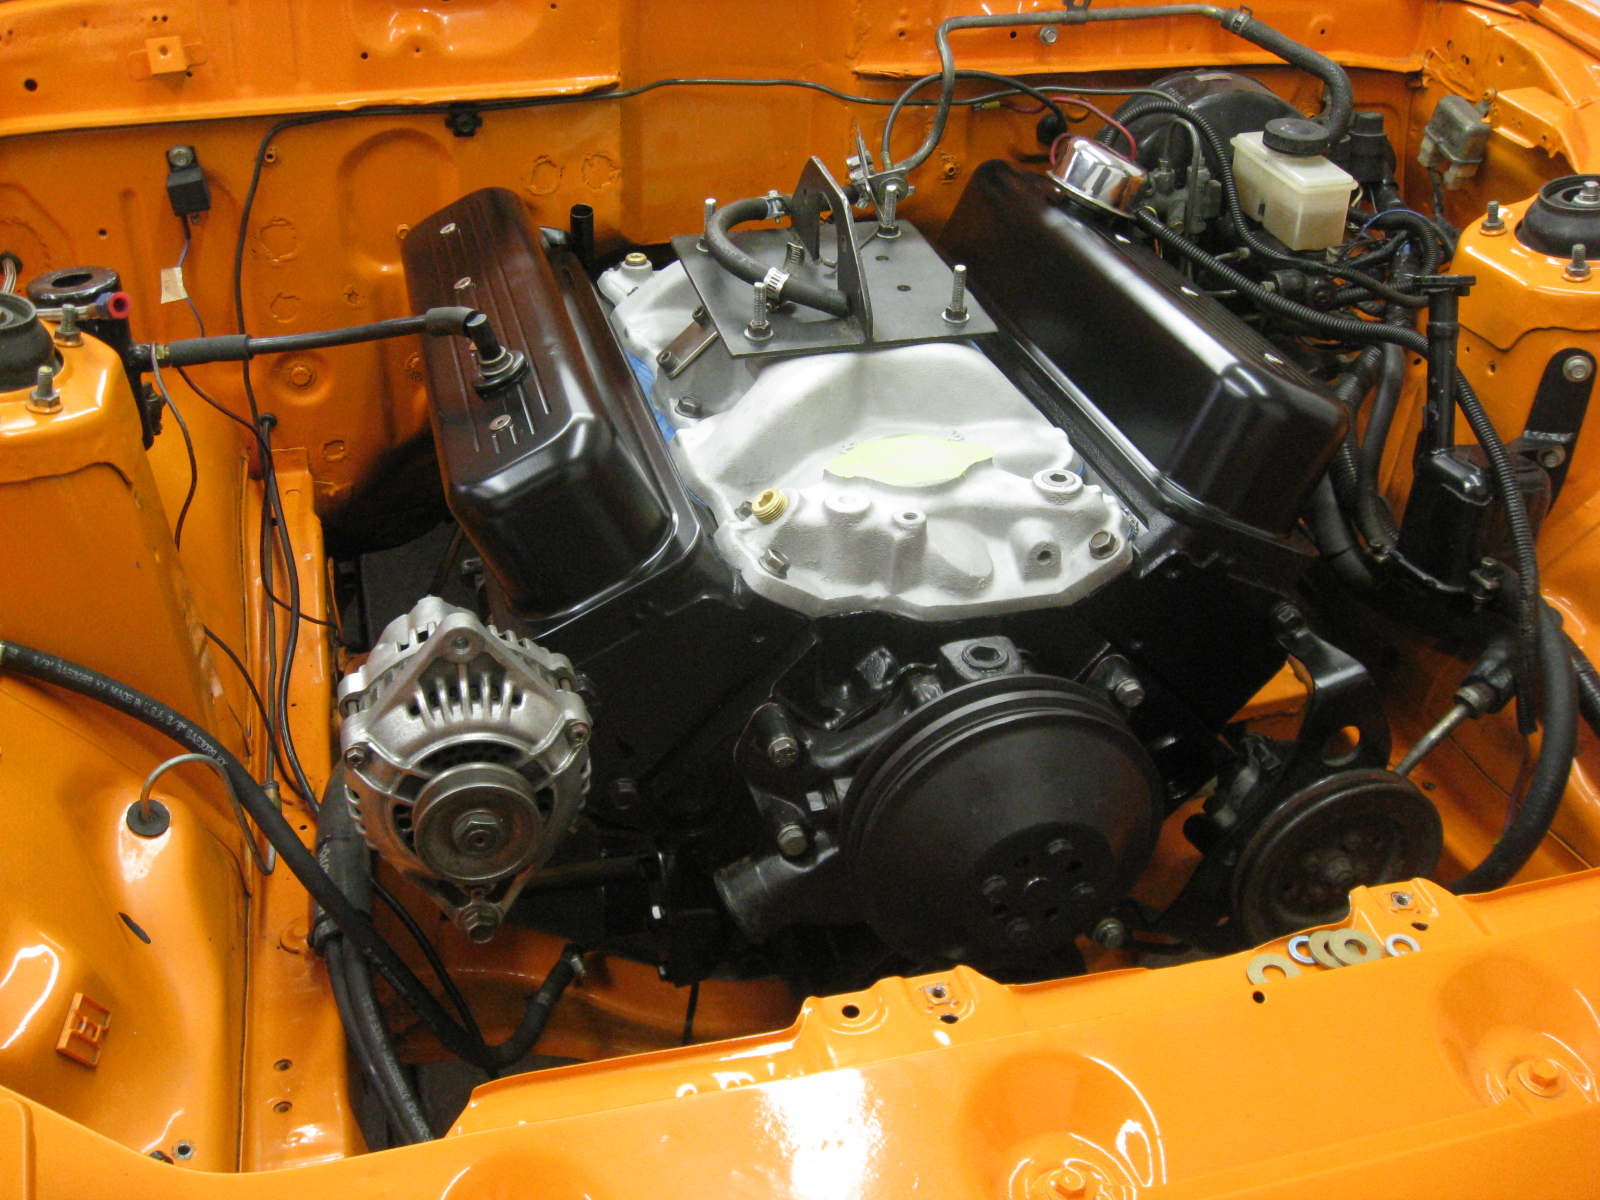 Second Gen Motor Readied